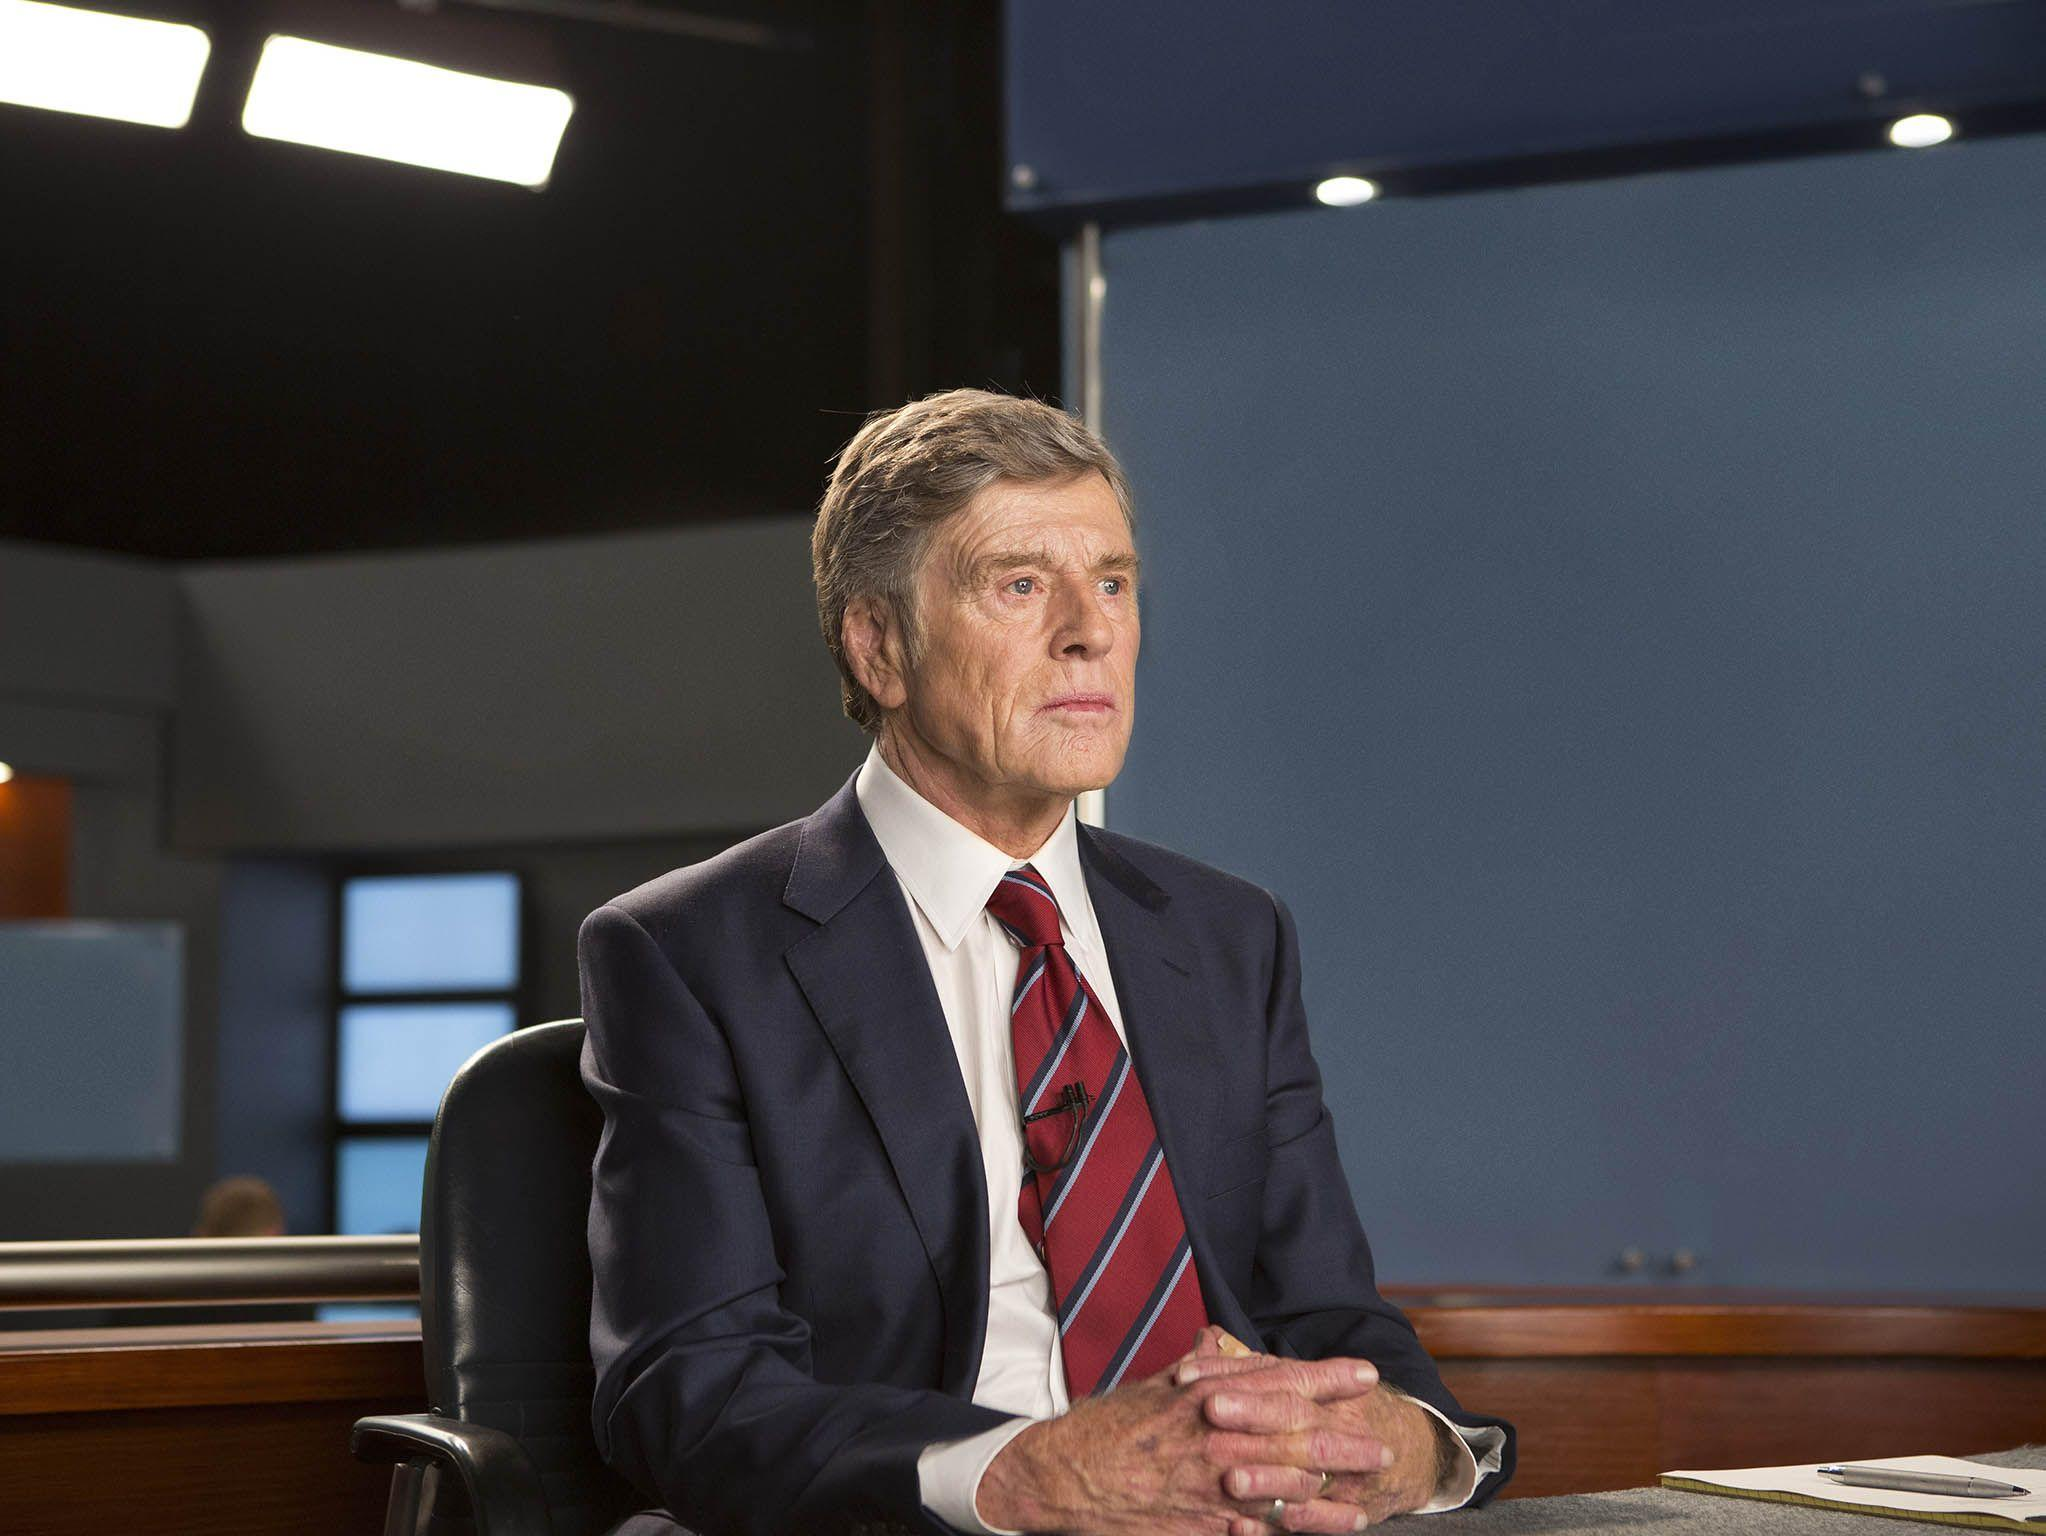 Robert Redford's new film continues his career-long obsession with ...